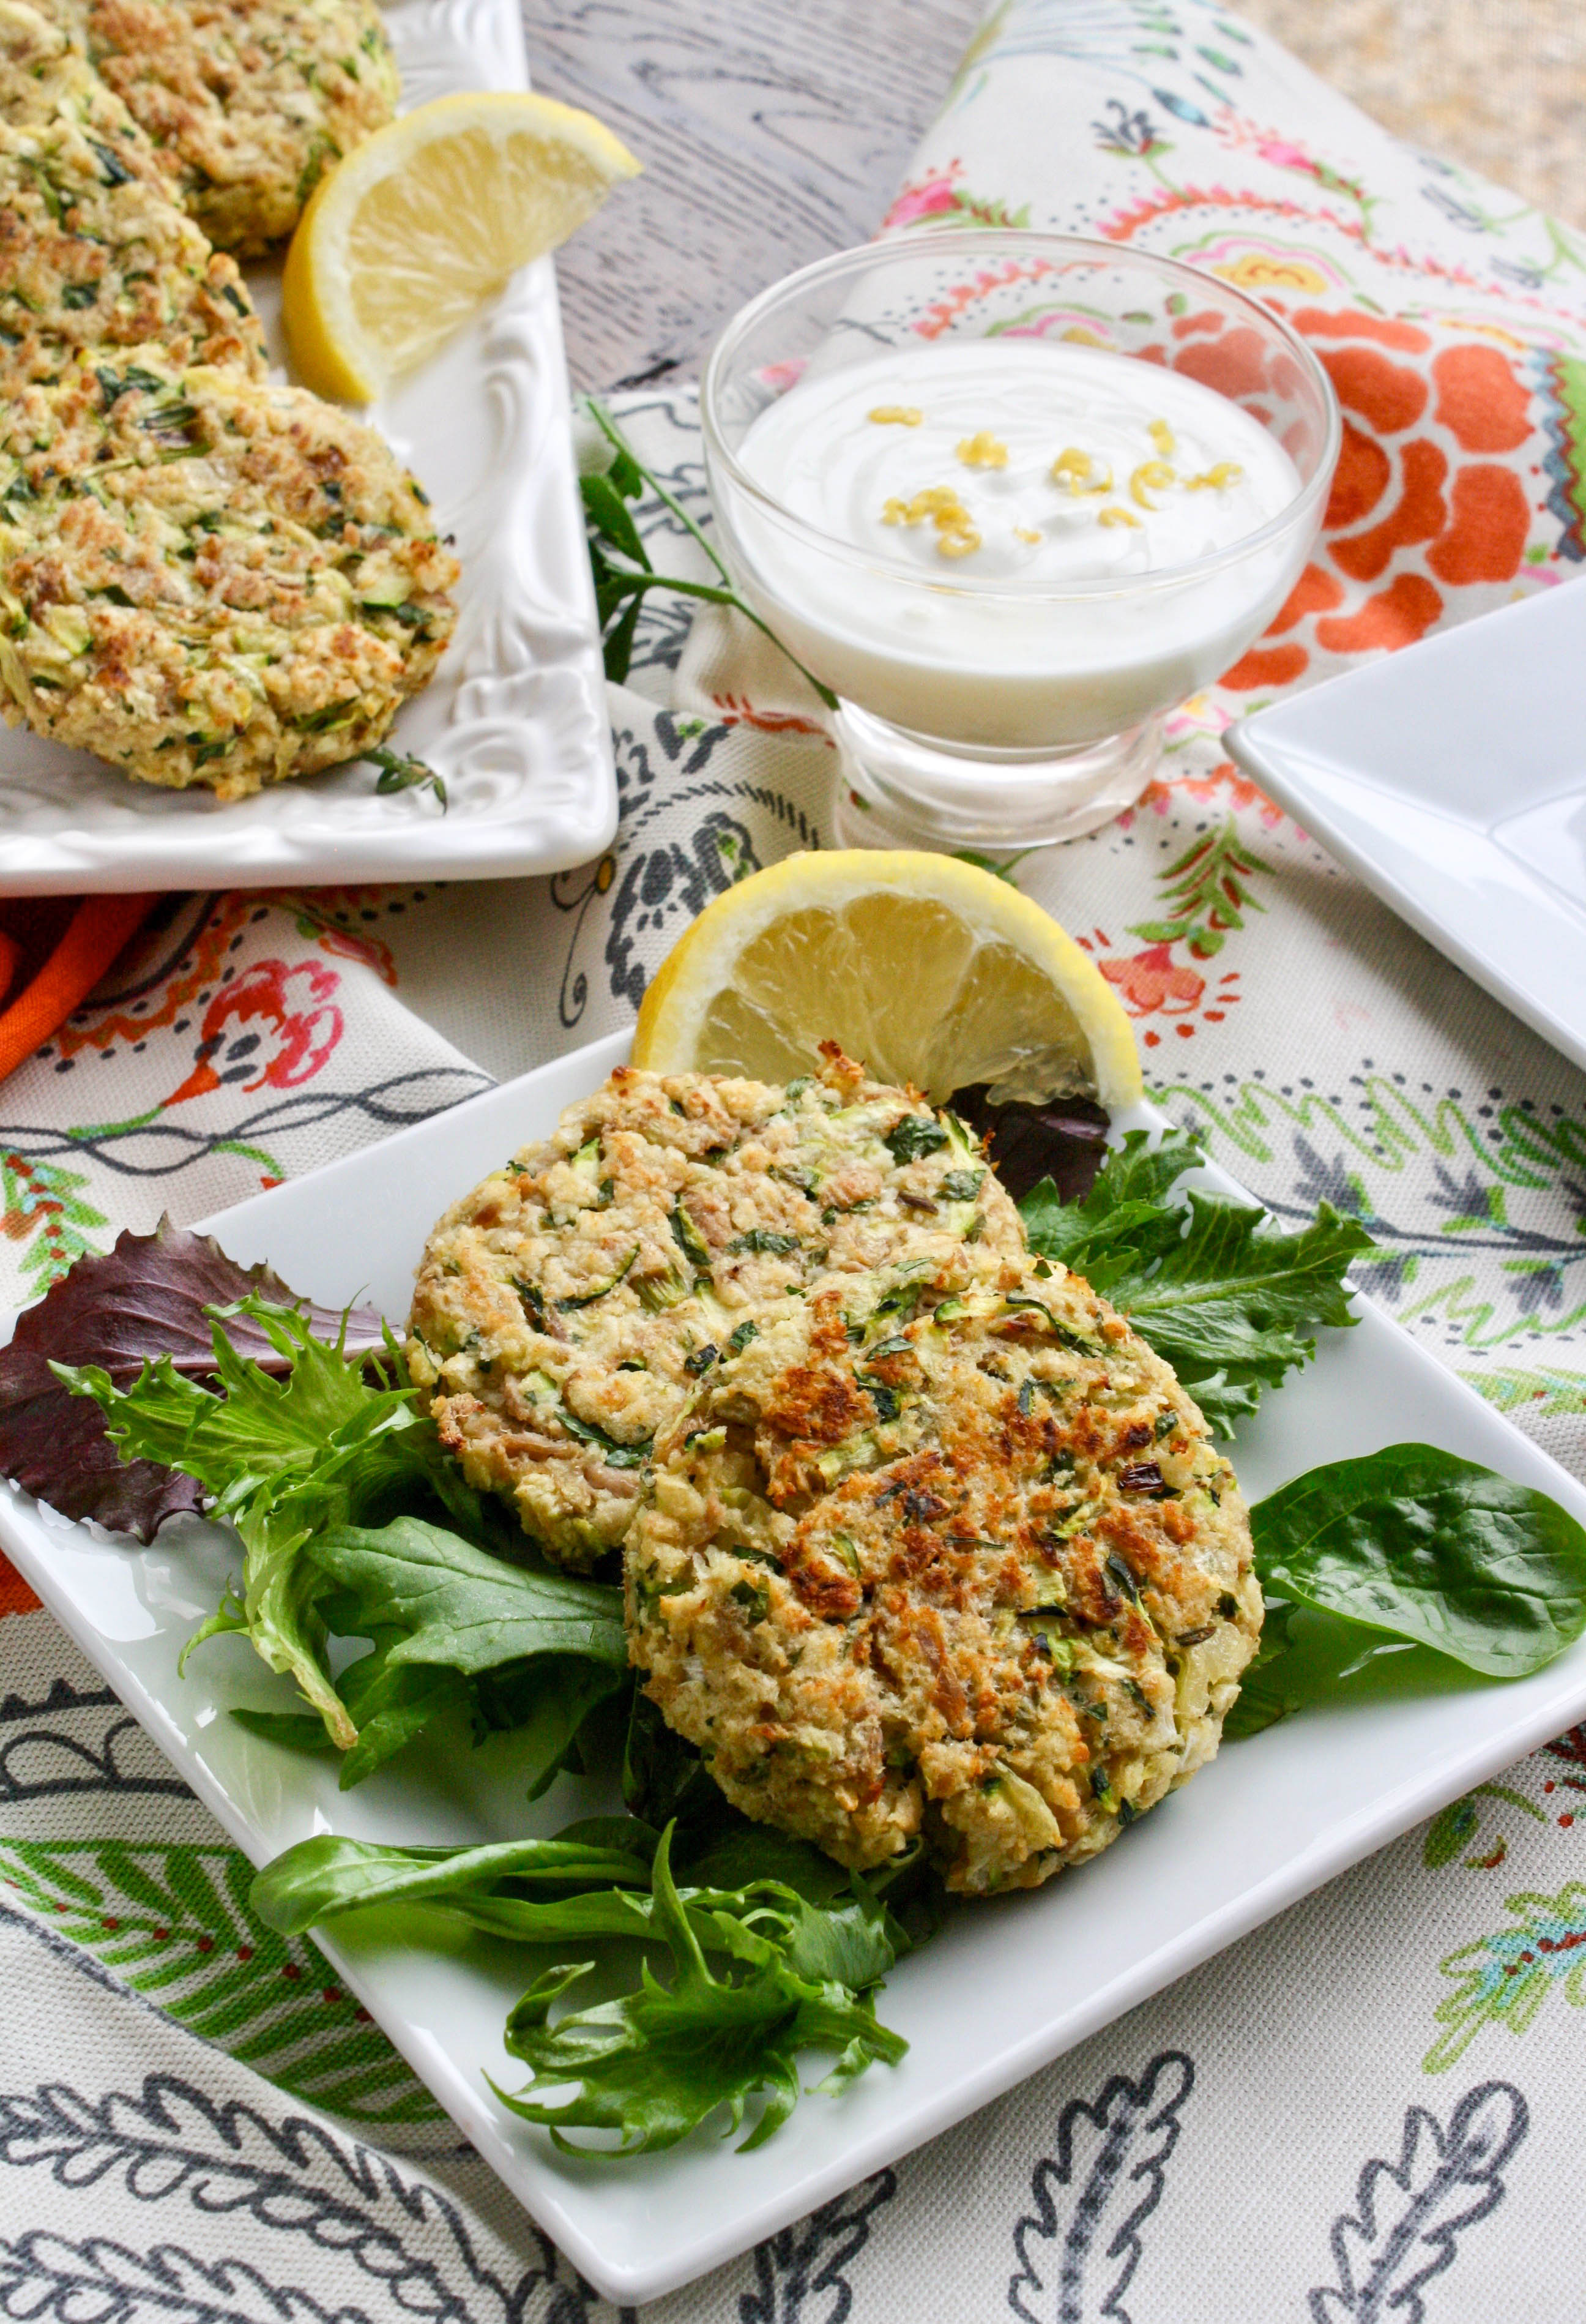 Baked Tuna and Zucchini Cakes with Lemon-Yogurt Dressing are a lovely addition to lunch or dinner. They're easy to make, and so flavorful!